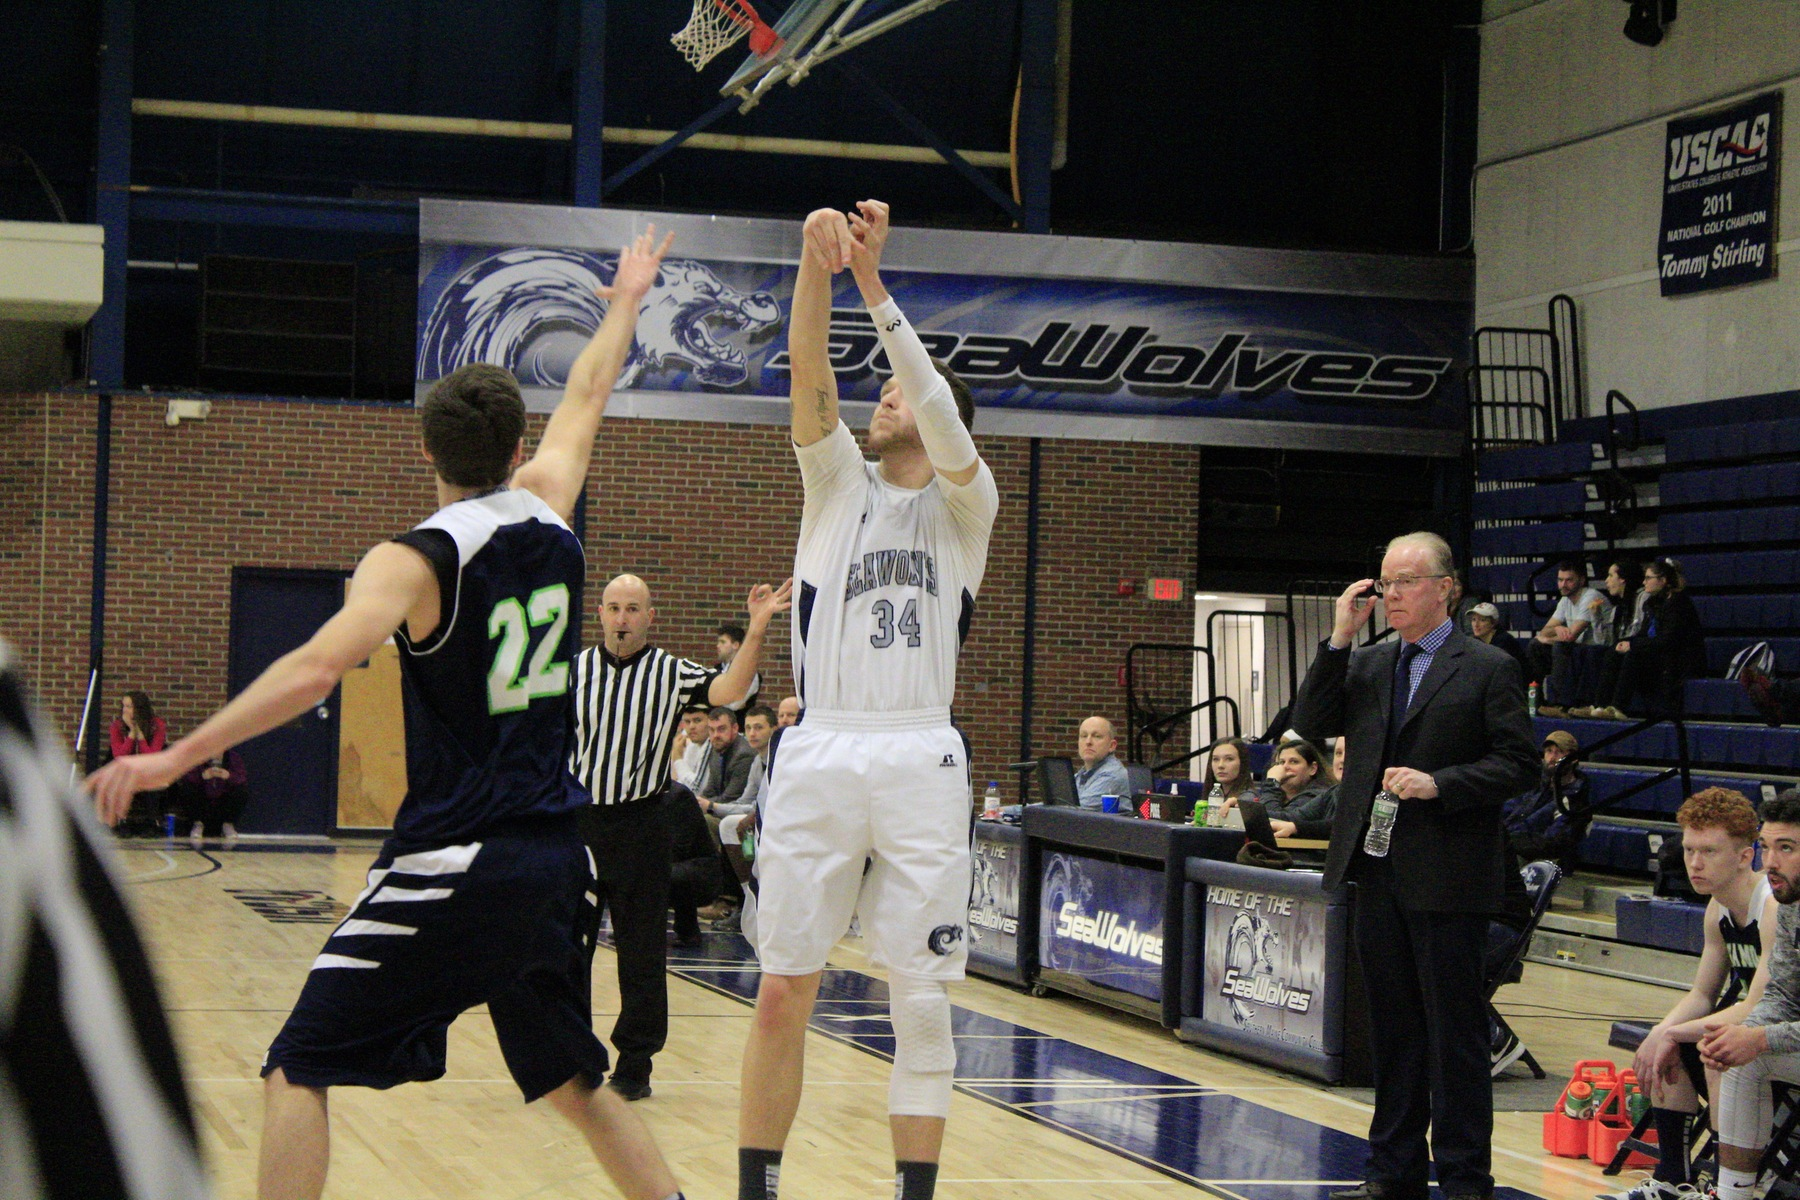 Cloutier Becomes 19th Player To Reach 1,000, SeaWolves Down Moose 75-58